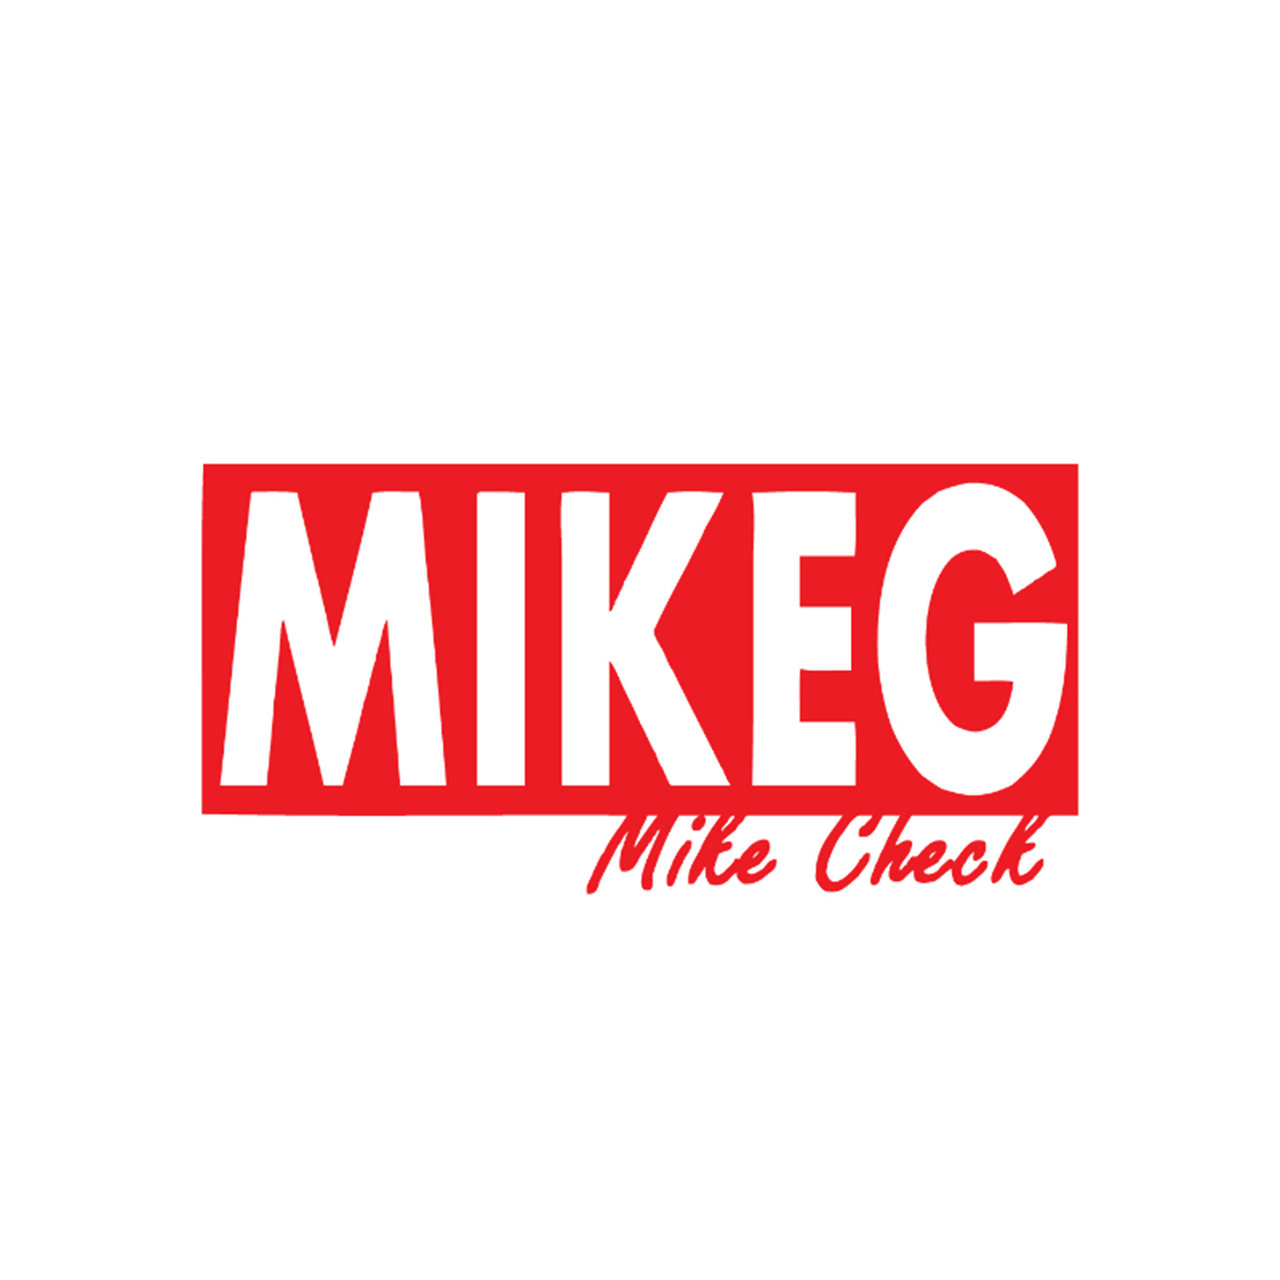 Mike Check